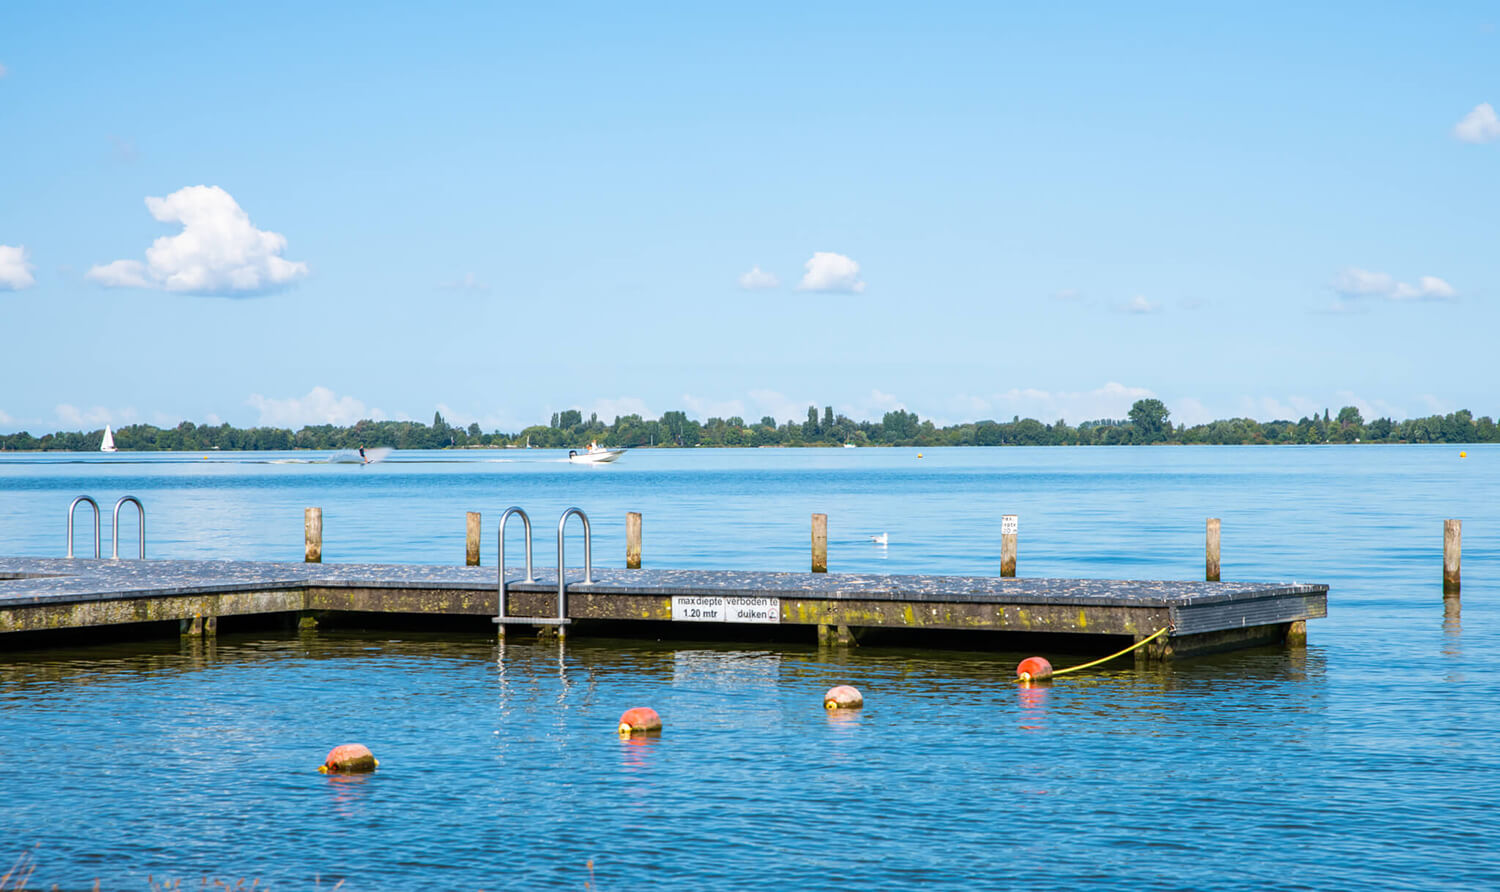 Swimming in Aalsmeer at swimming jetty Kudelstaart